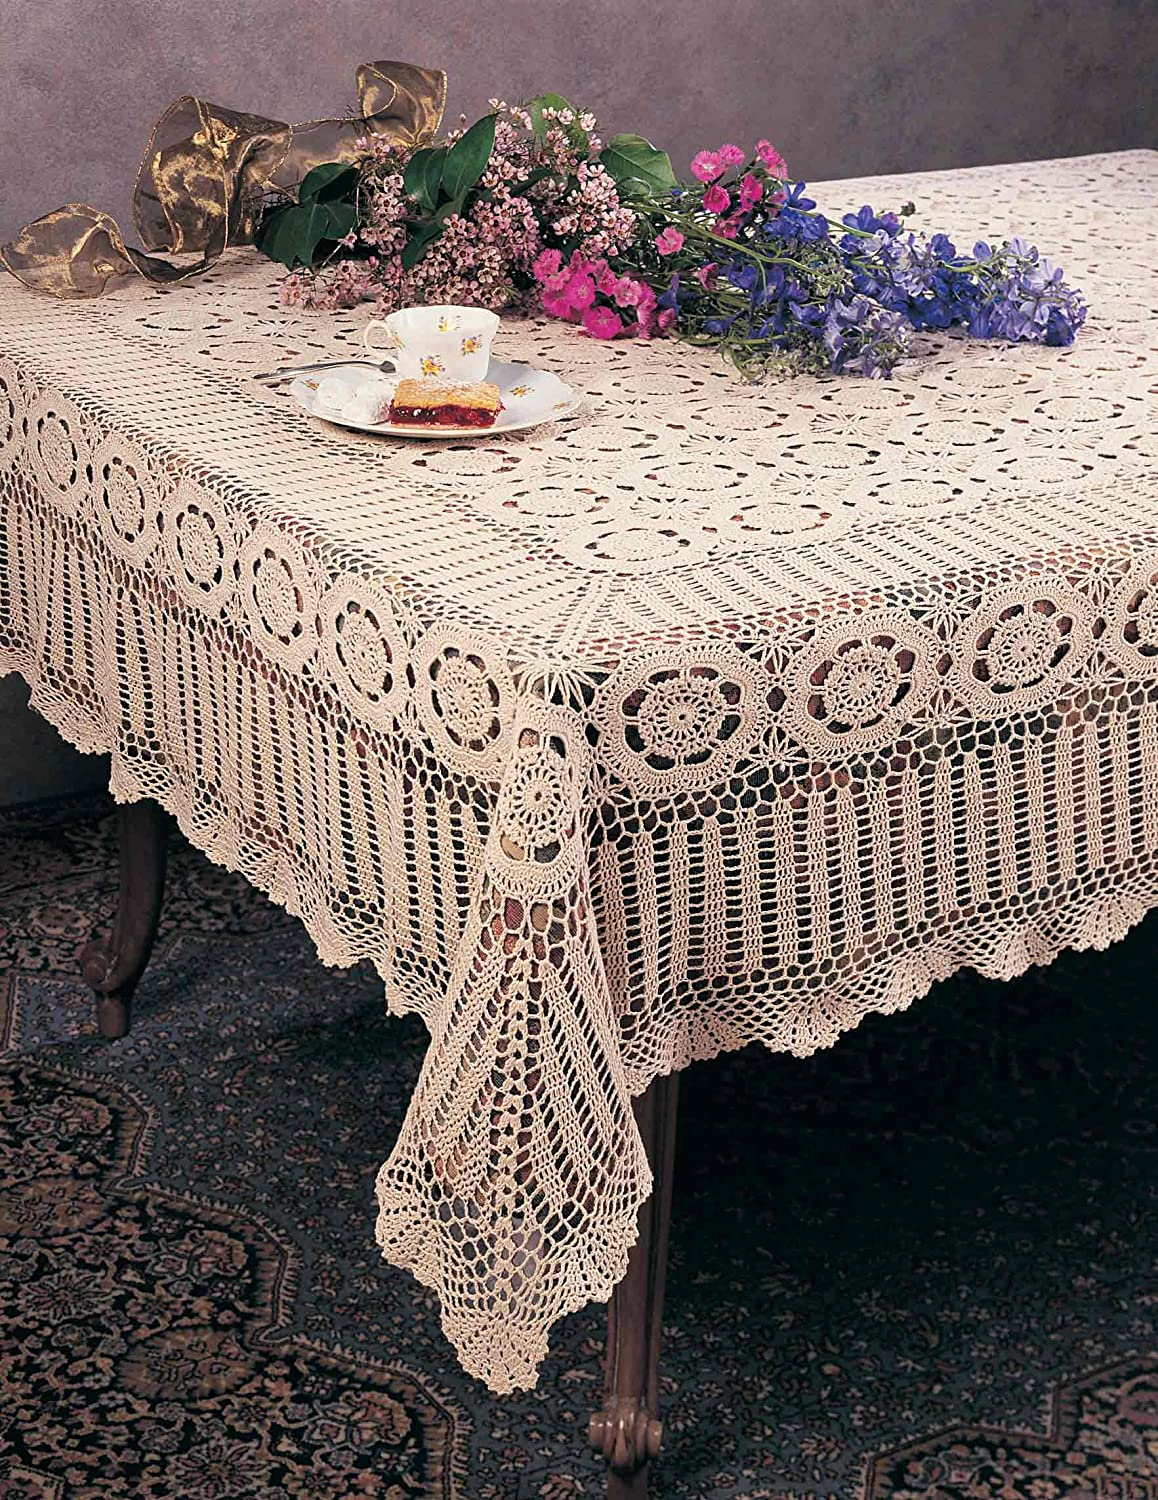 Lace Tablecloths Oval 300x300.jpg Amazon.com: Handmade Crochet Lace Tablecloth. 100% Cotton Crochet. Ecru, 72  Inch X108 Inch Oblong. One piece .: Home u0026 Kitchen